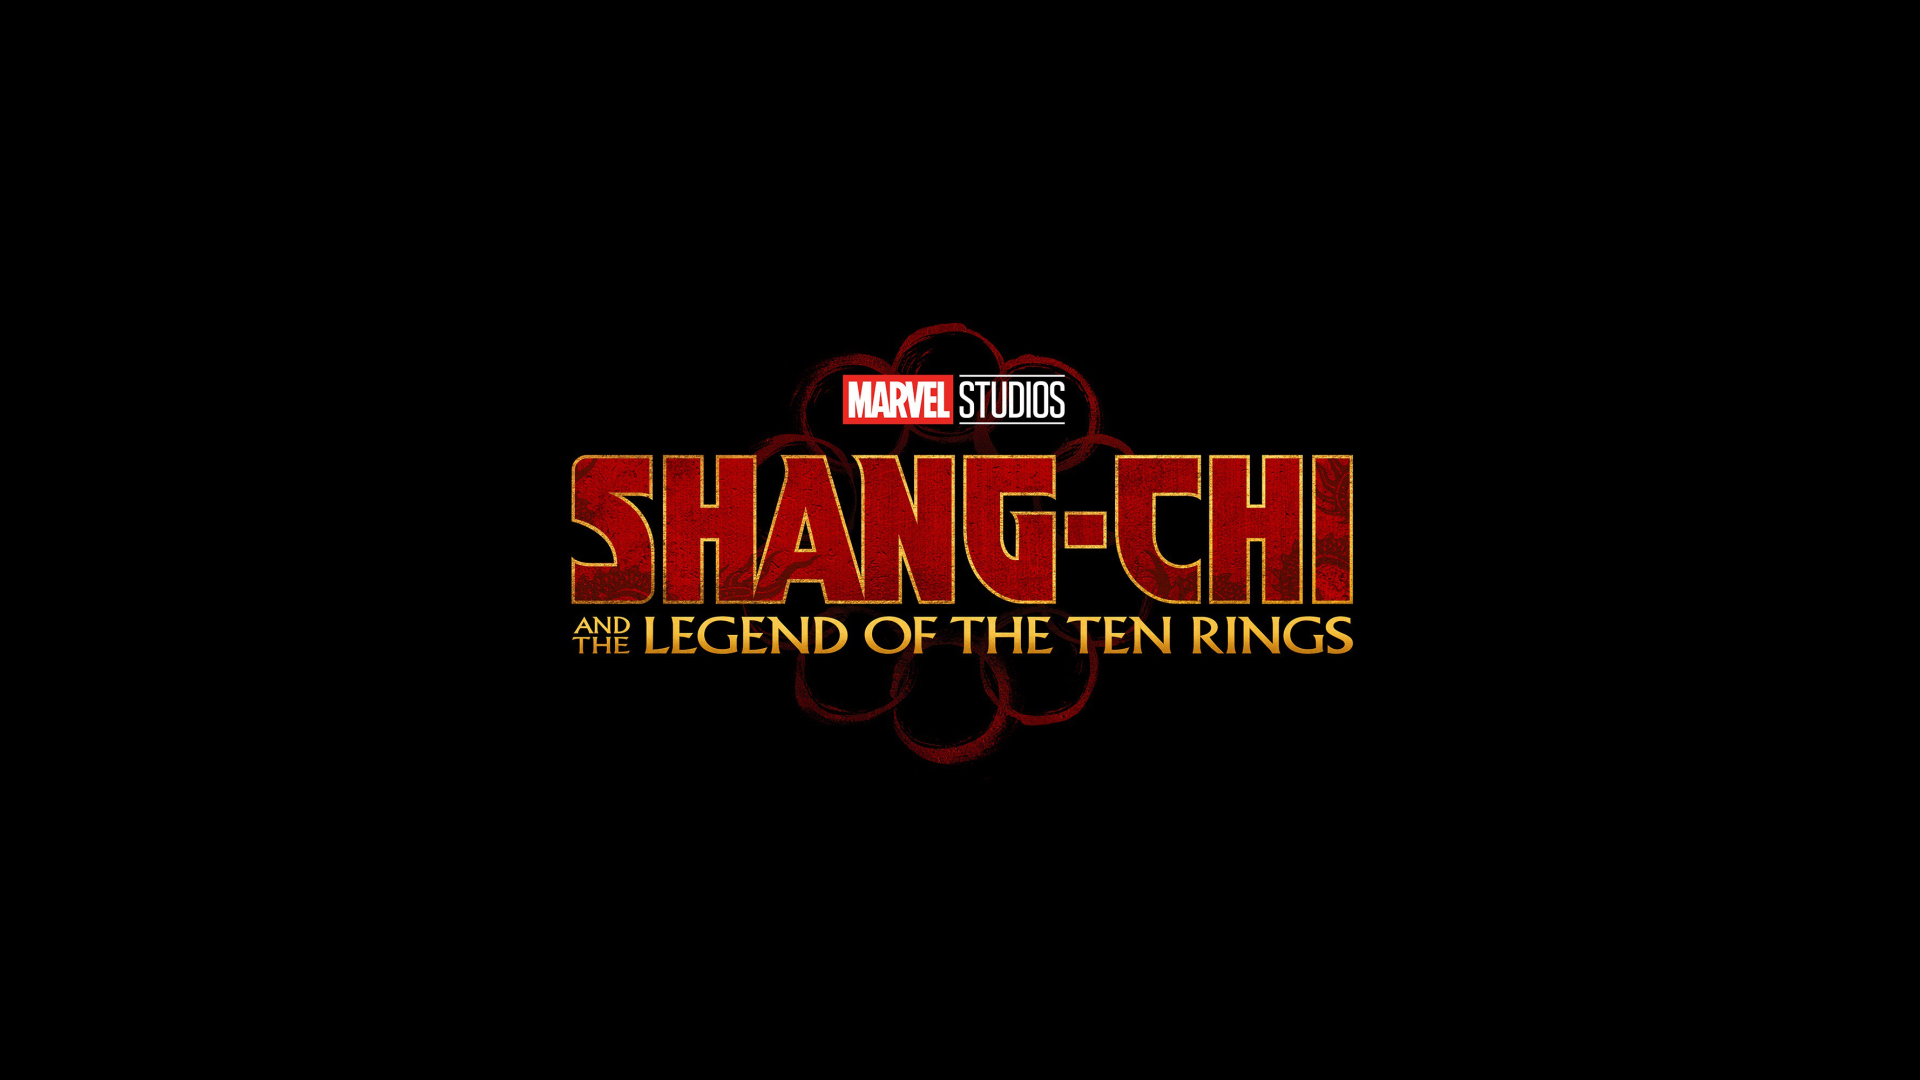 30 Shang Chi and the Legend of the Ten Rings HD Wallpapers 1920x1080